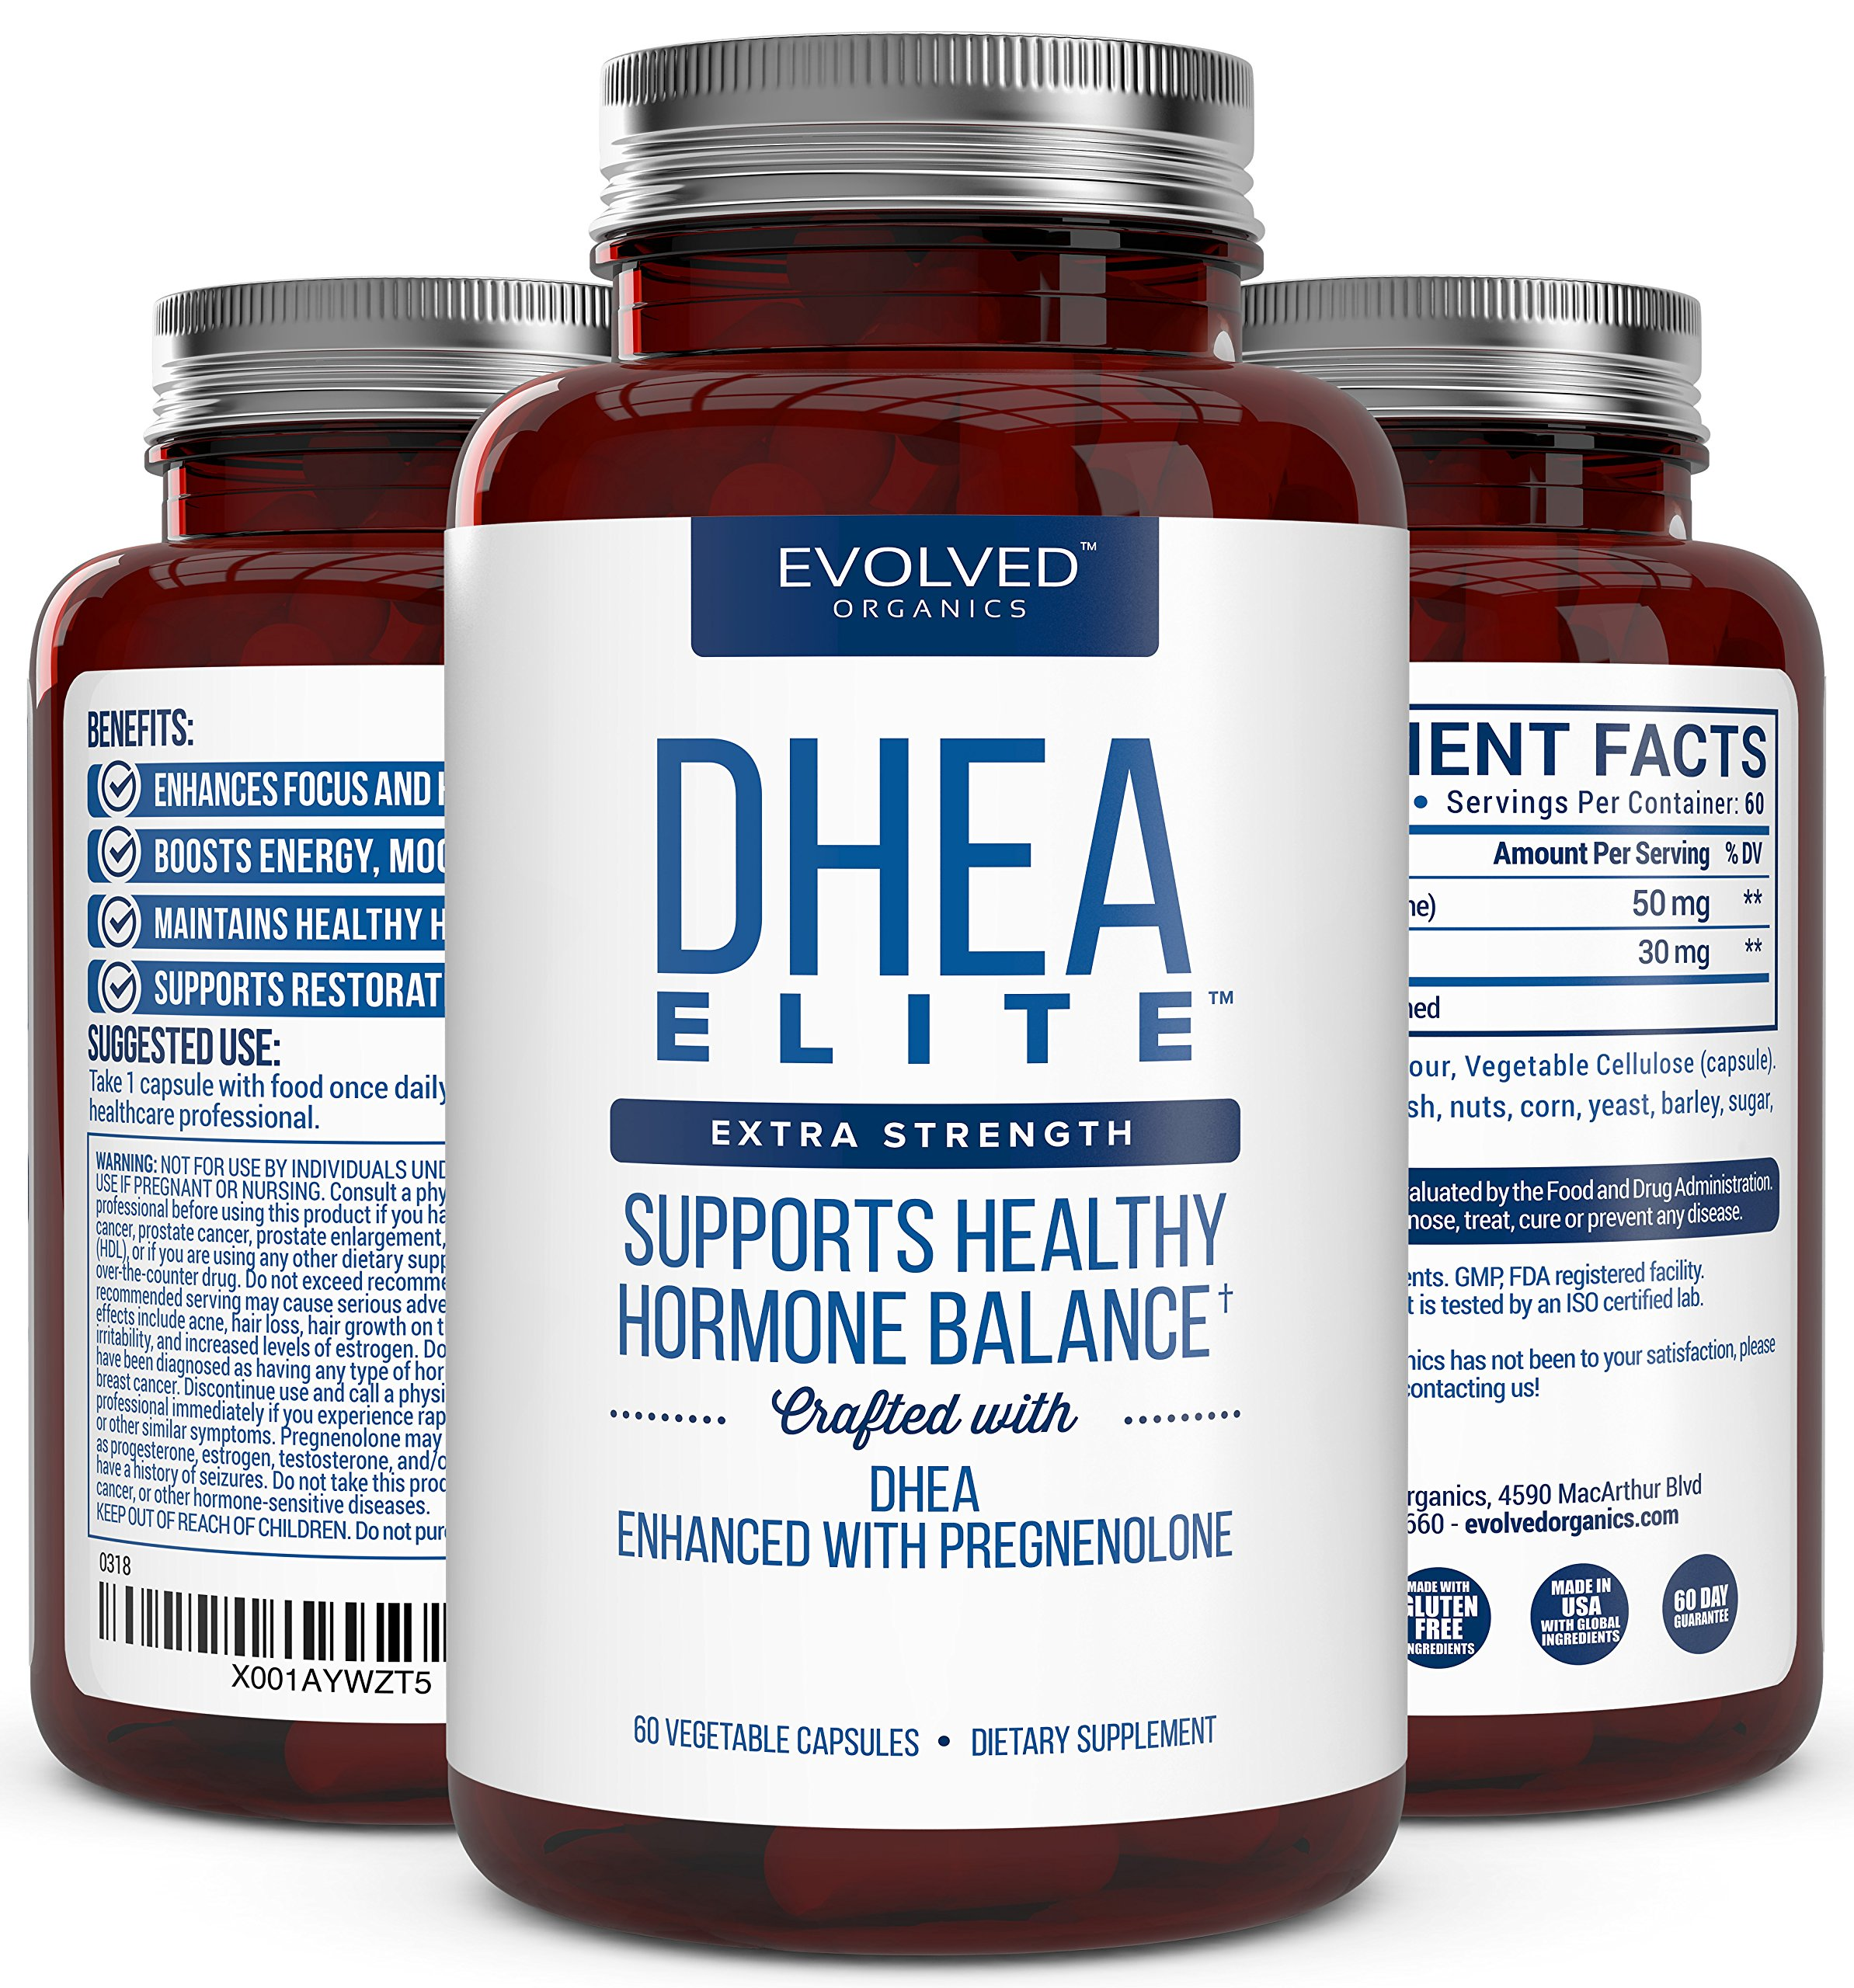 Extra Strength DHEA 50mg, With Pregnenolone 30mg – Hormone Balancer For Over 30's - Menopause Relief For Over 50's – Supports Energy, Mood, Sleep, and Healthy Aging – 60-Day Supply